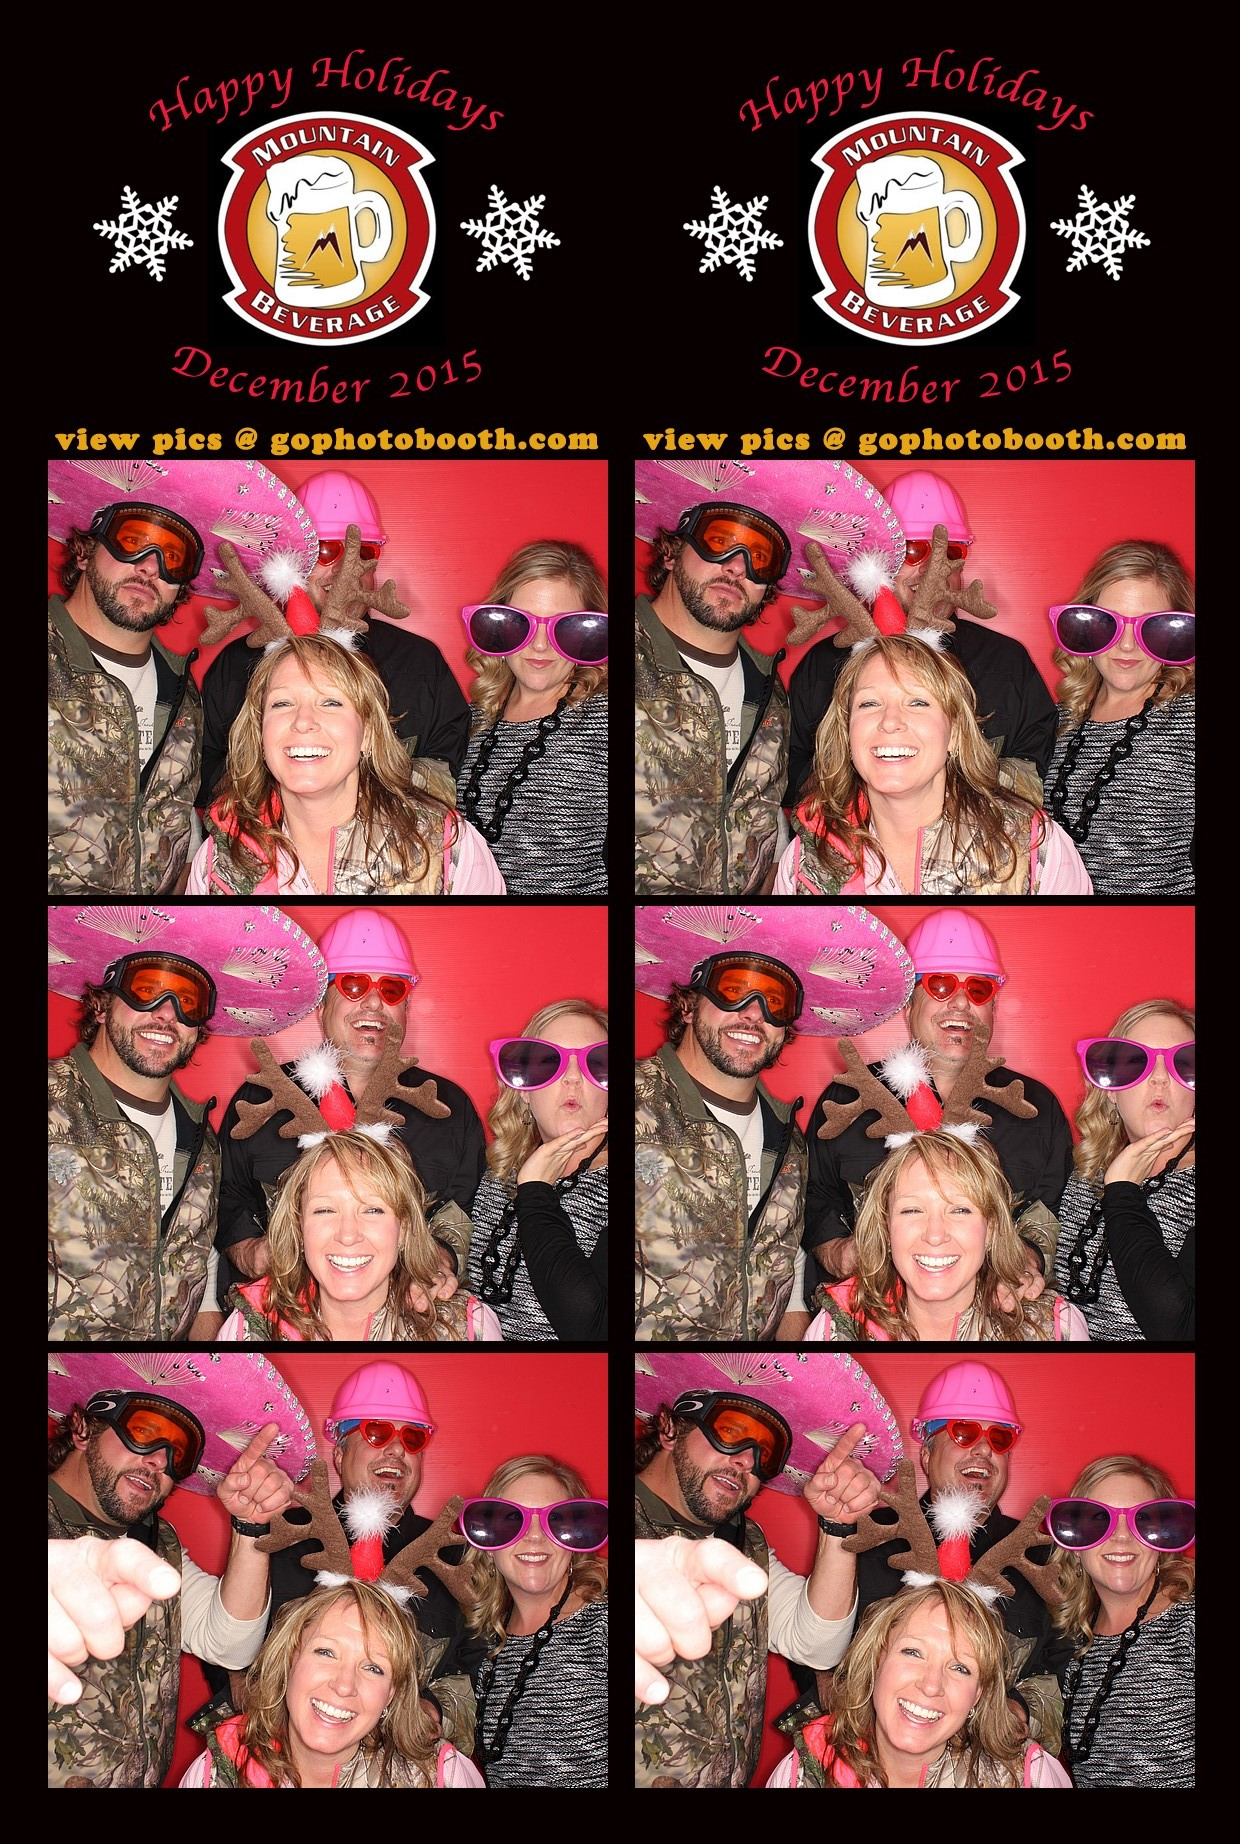 Mt. Beverage Holiday Party Photo Booth 12/19/15